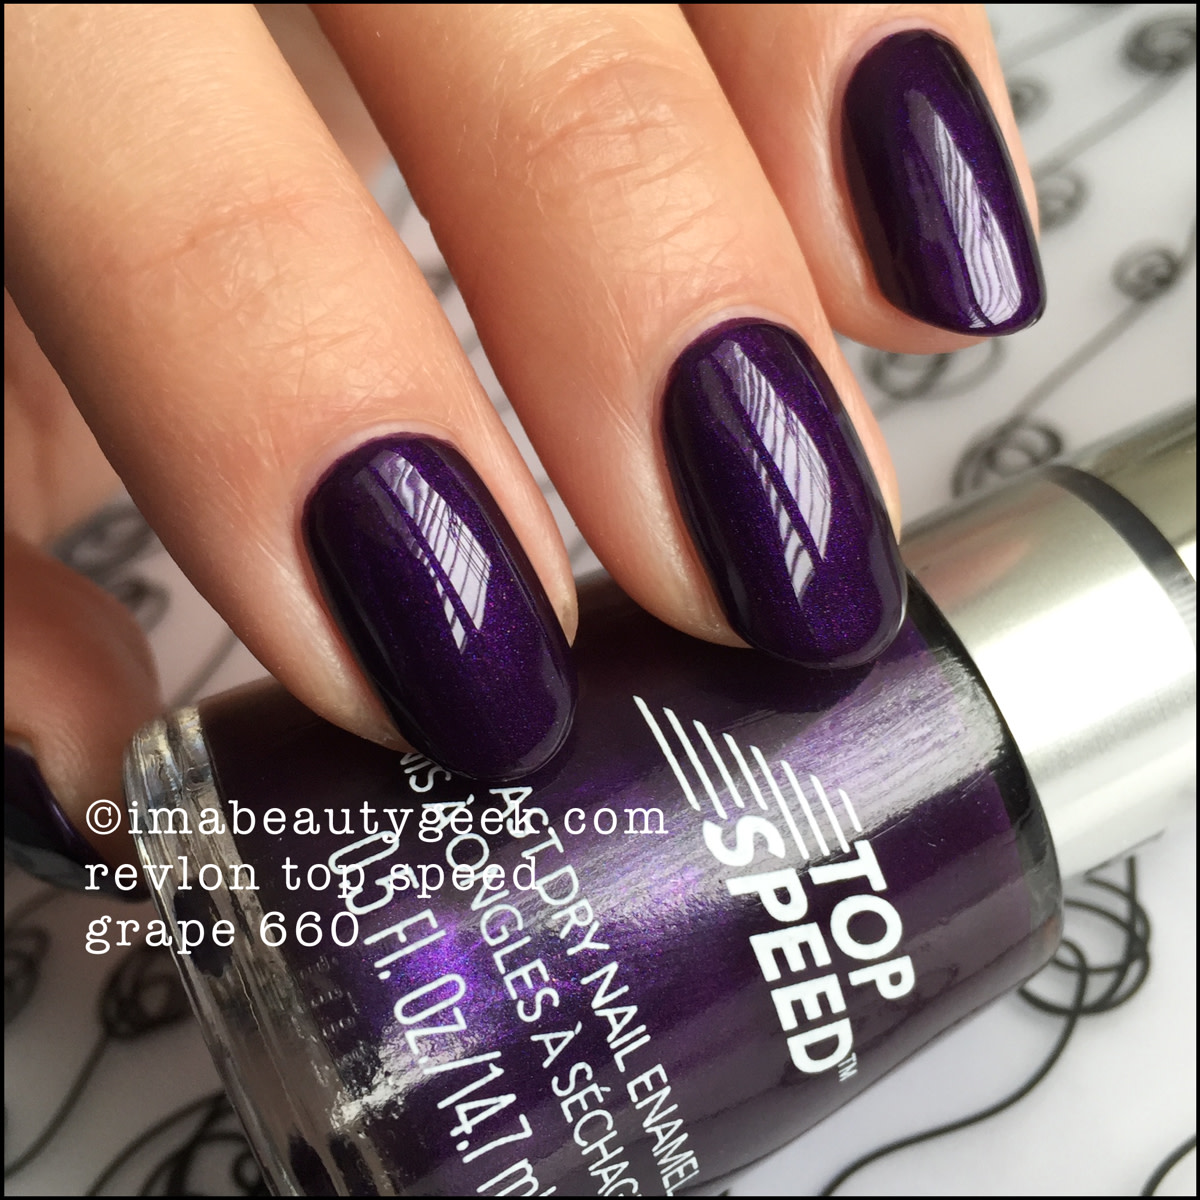 Revlon Nail Polish Grape 660_Revlon Top Speed Grape Polish